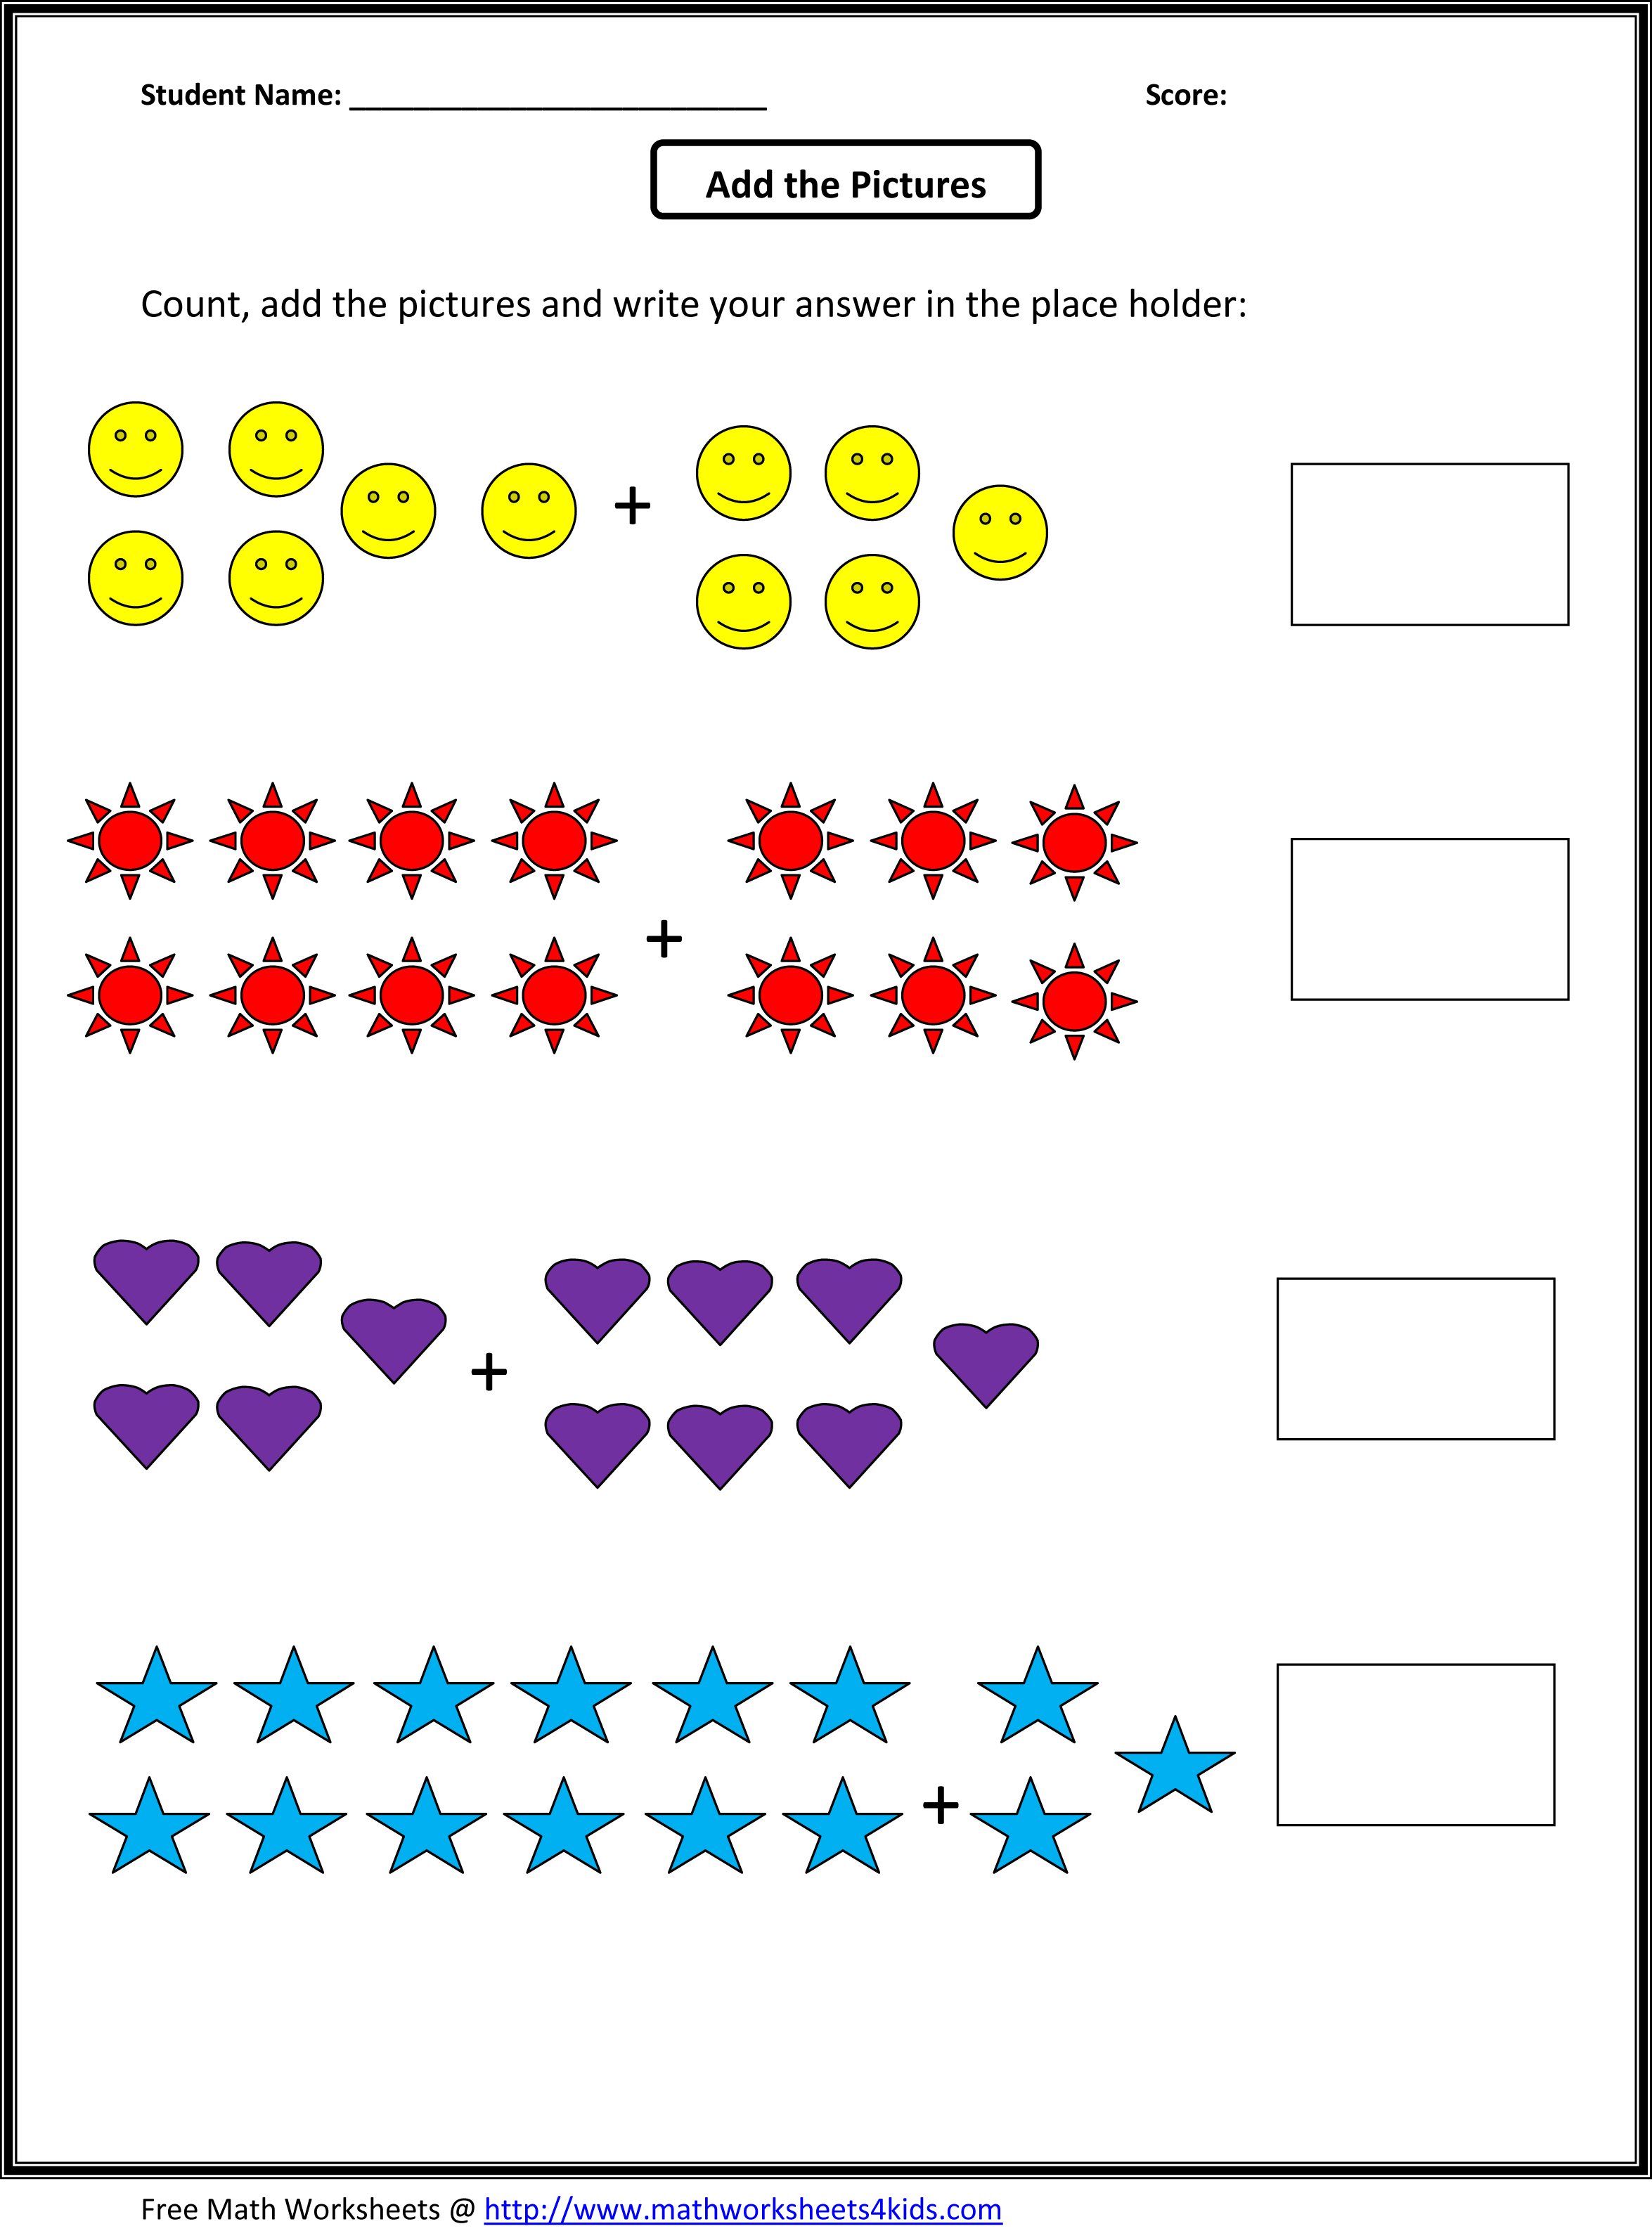 Proatmealus  Pleasant Grade  Maths Worksheet  Reocurent With Excellent Math Worksheets For St Grade Free  Reocurent With Cute Earth Day Preschool Worksheets Also Eucharist Worksheets In Addition Us Presidents Worksheets And St Grade Music Worksheets As Well As Scientific Notation Division Worksheet Additionally Money Worksheet St Grade From Reocurentcom With Proatmealus  Excellent Grade  Maths Worksheet  Reocurent With Cute Math Worksheets For St Grade Free  Reocurent And Pleasant Earth Day Preschool Worksheets Also Eucharist Worksheets In Addition Us Presidents Worksheets From Reocurentcom